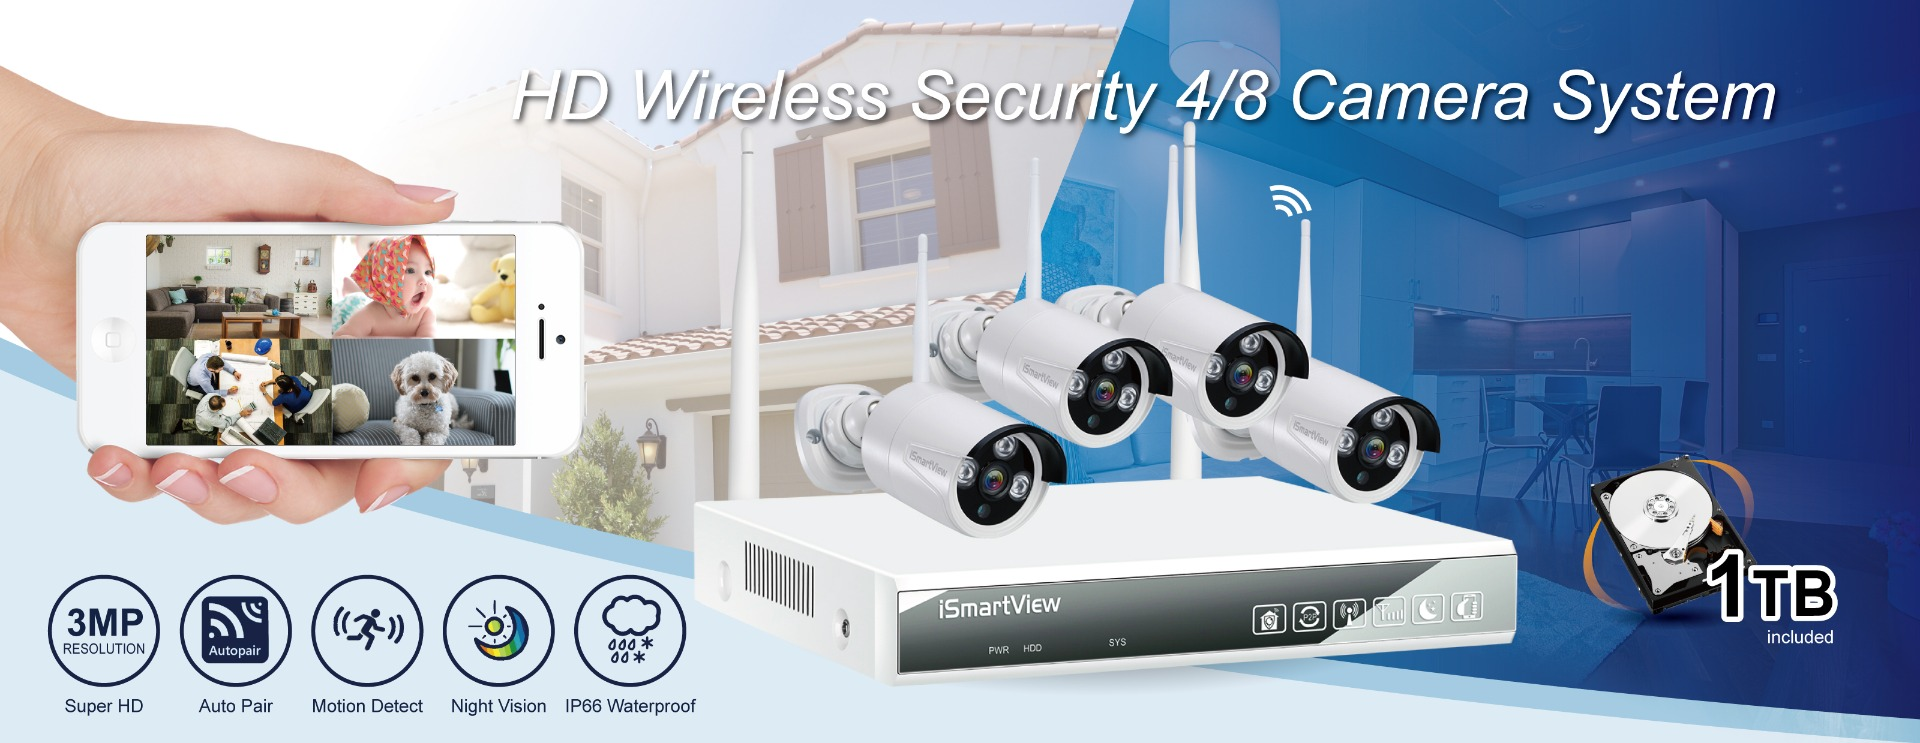 ismartview_cctv_wireless